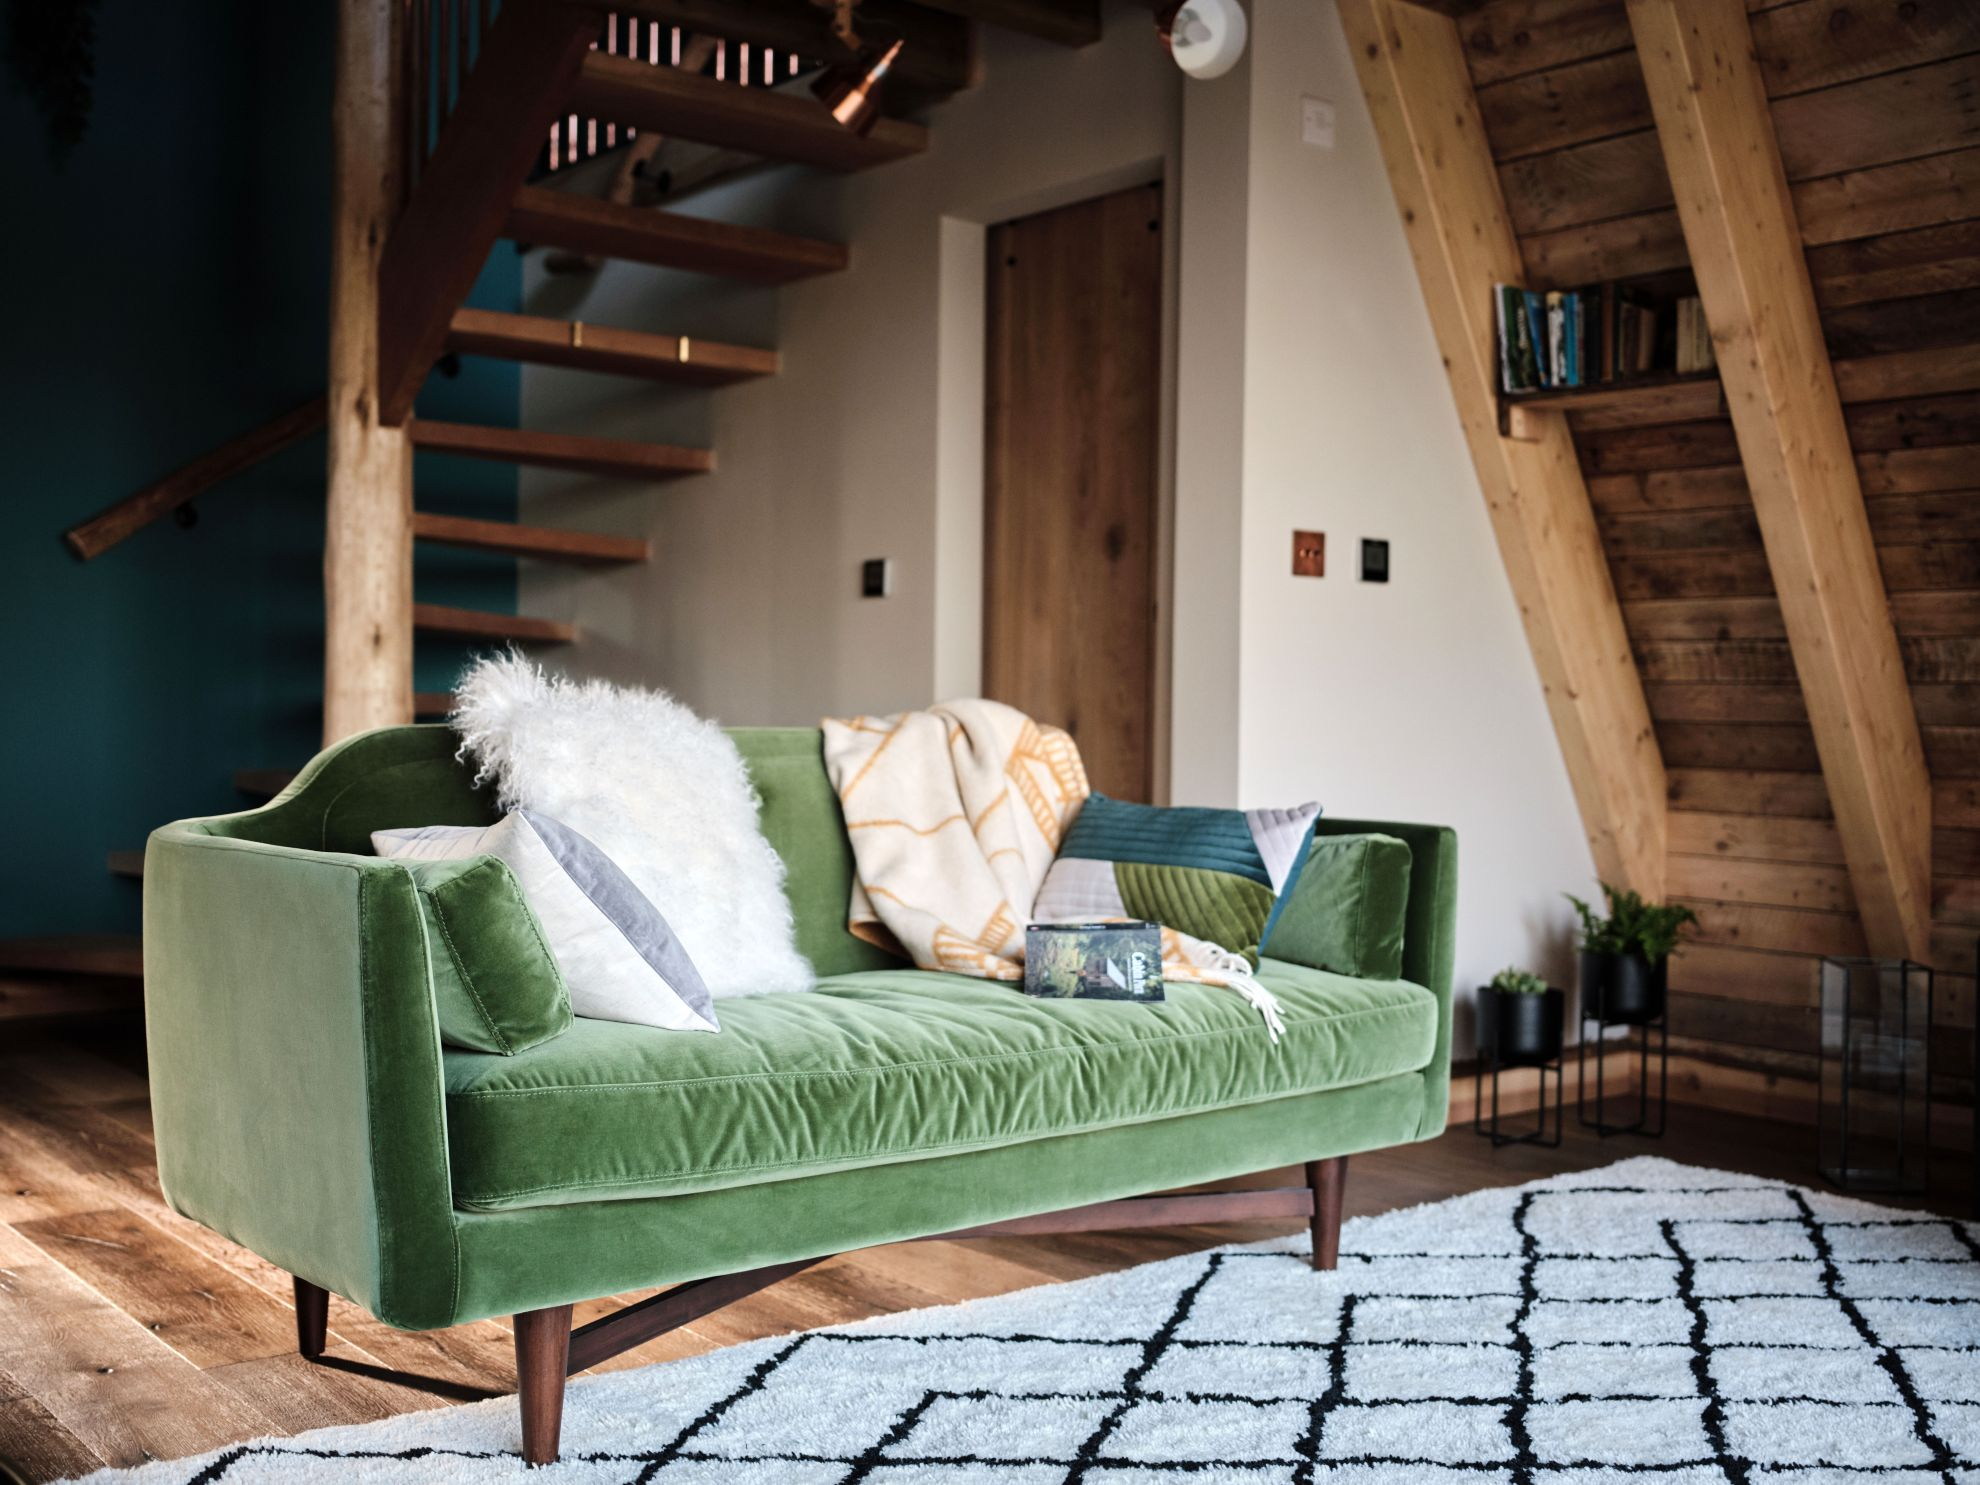 Luxury Treehouse Interior in partnership with MADE.COM